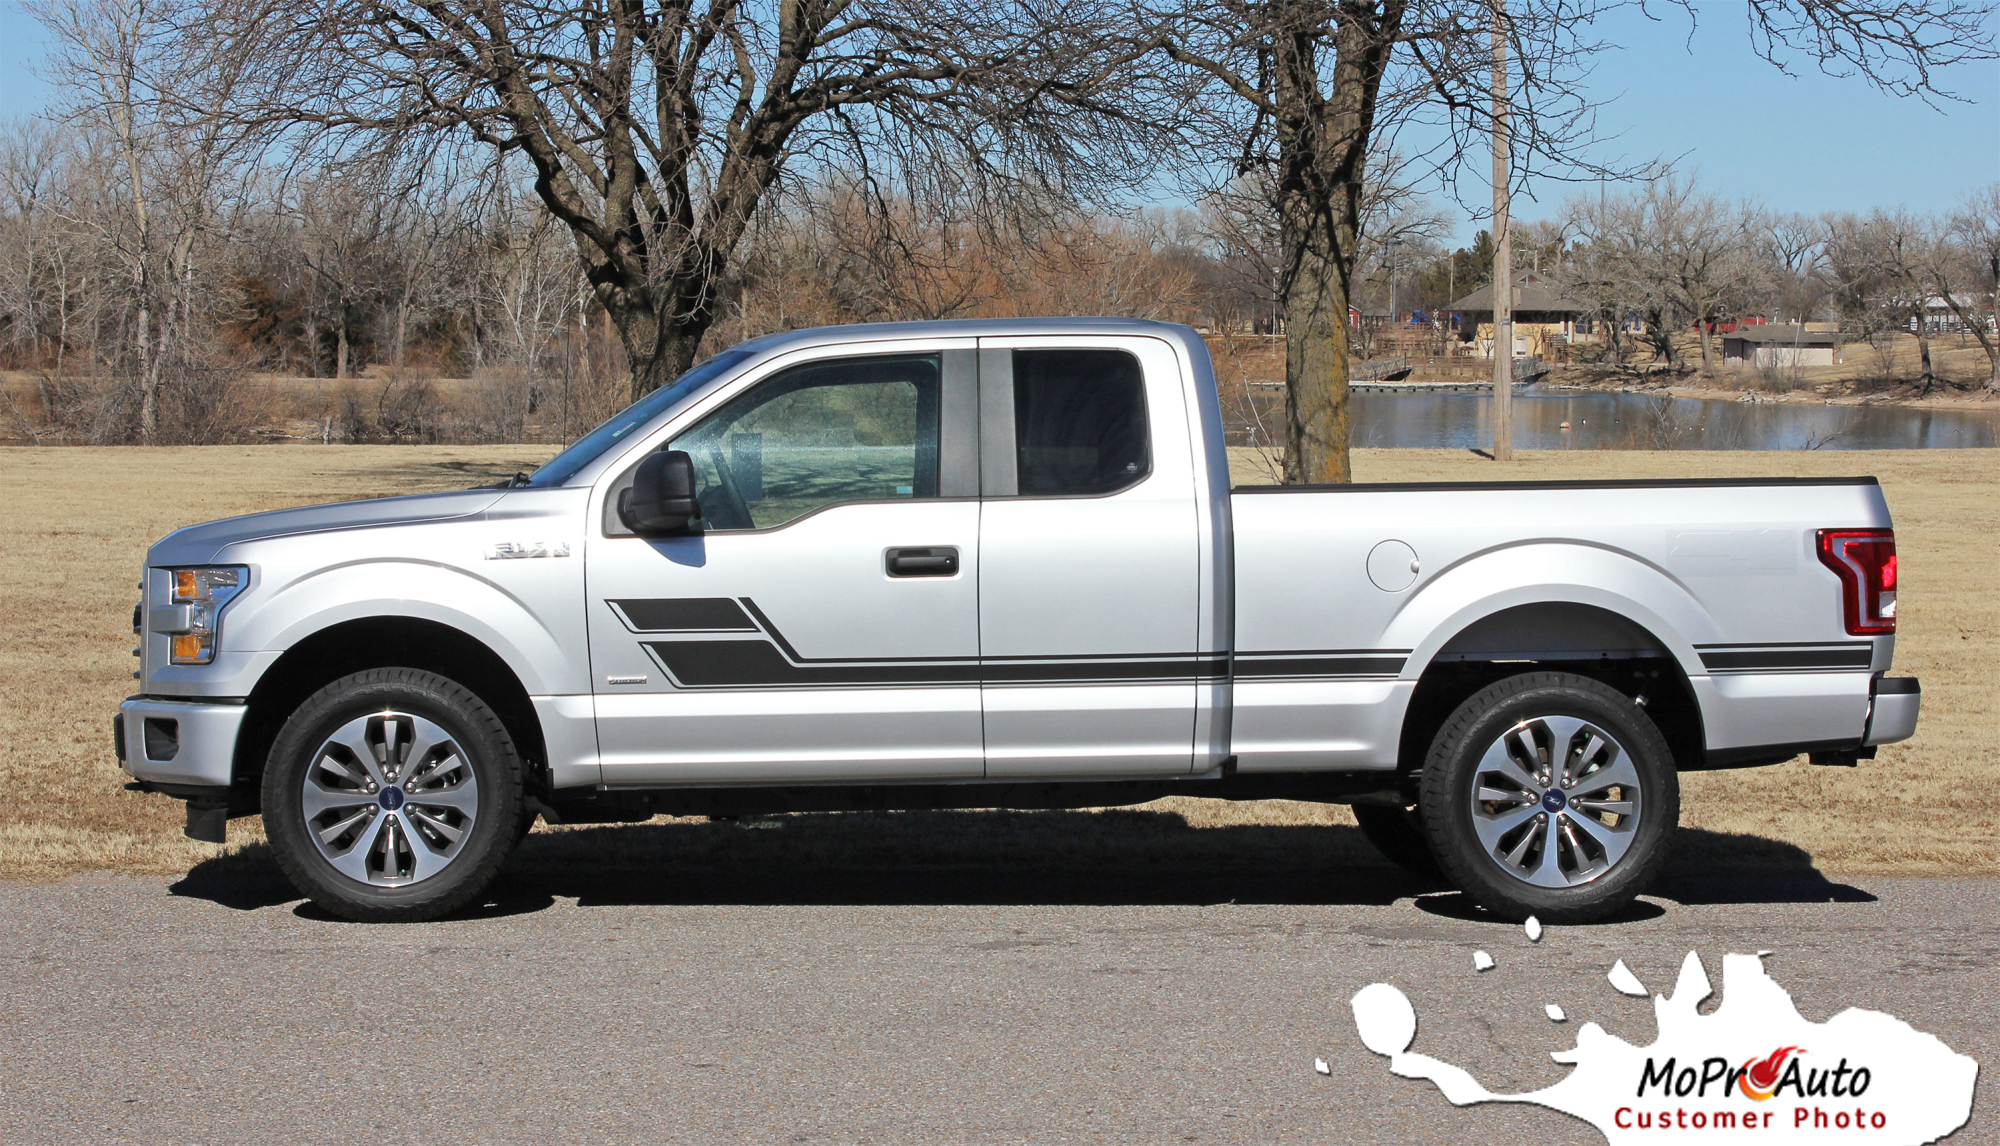 ELIMINATOR Hockey Door Ford F-Series F-150 Appearance Package Vinyl Graphics and Decals Kit - Customer Photo